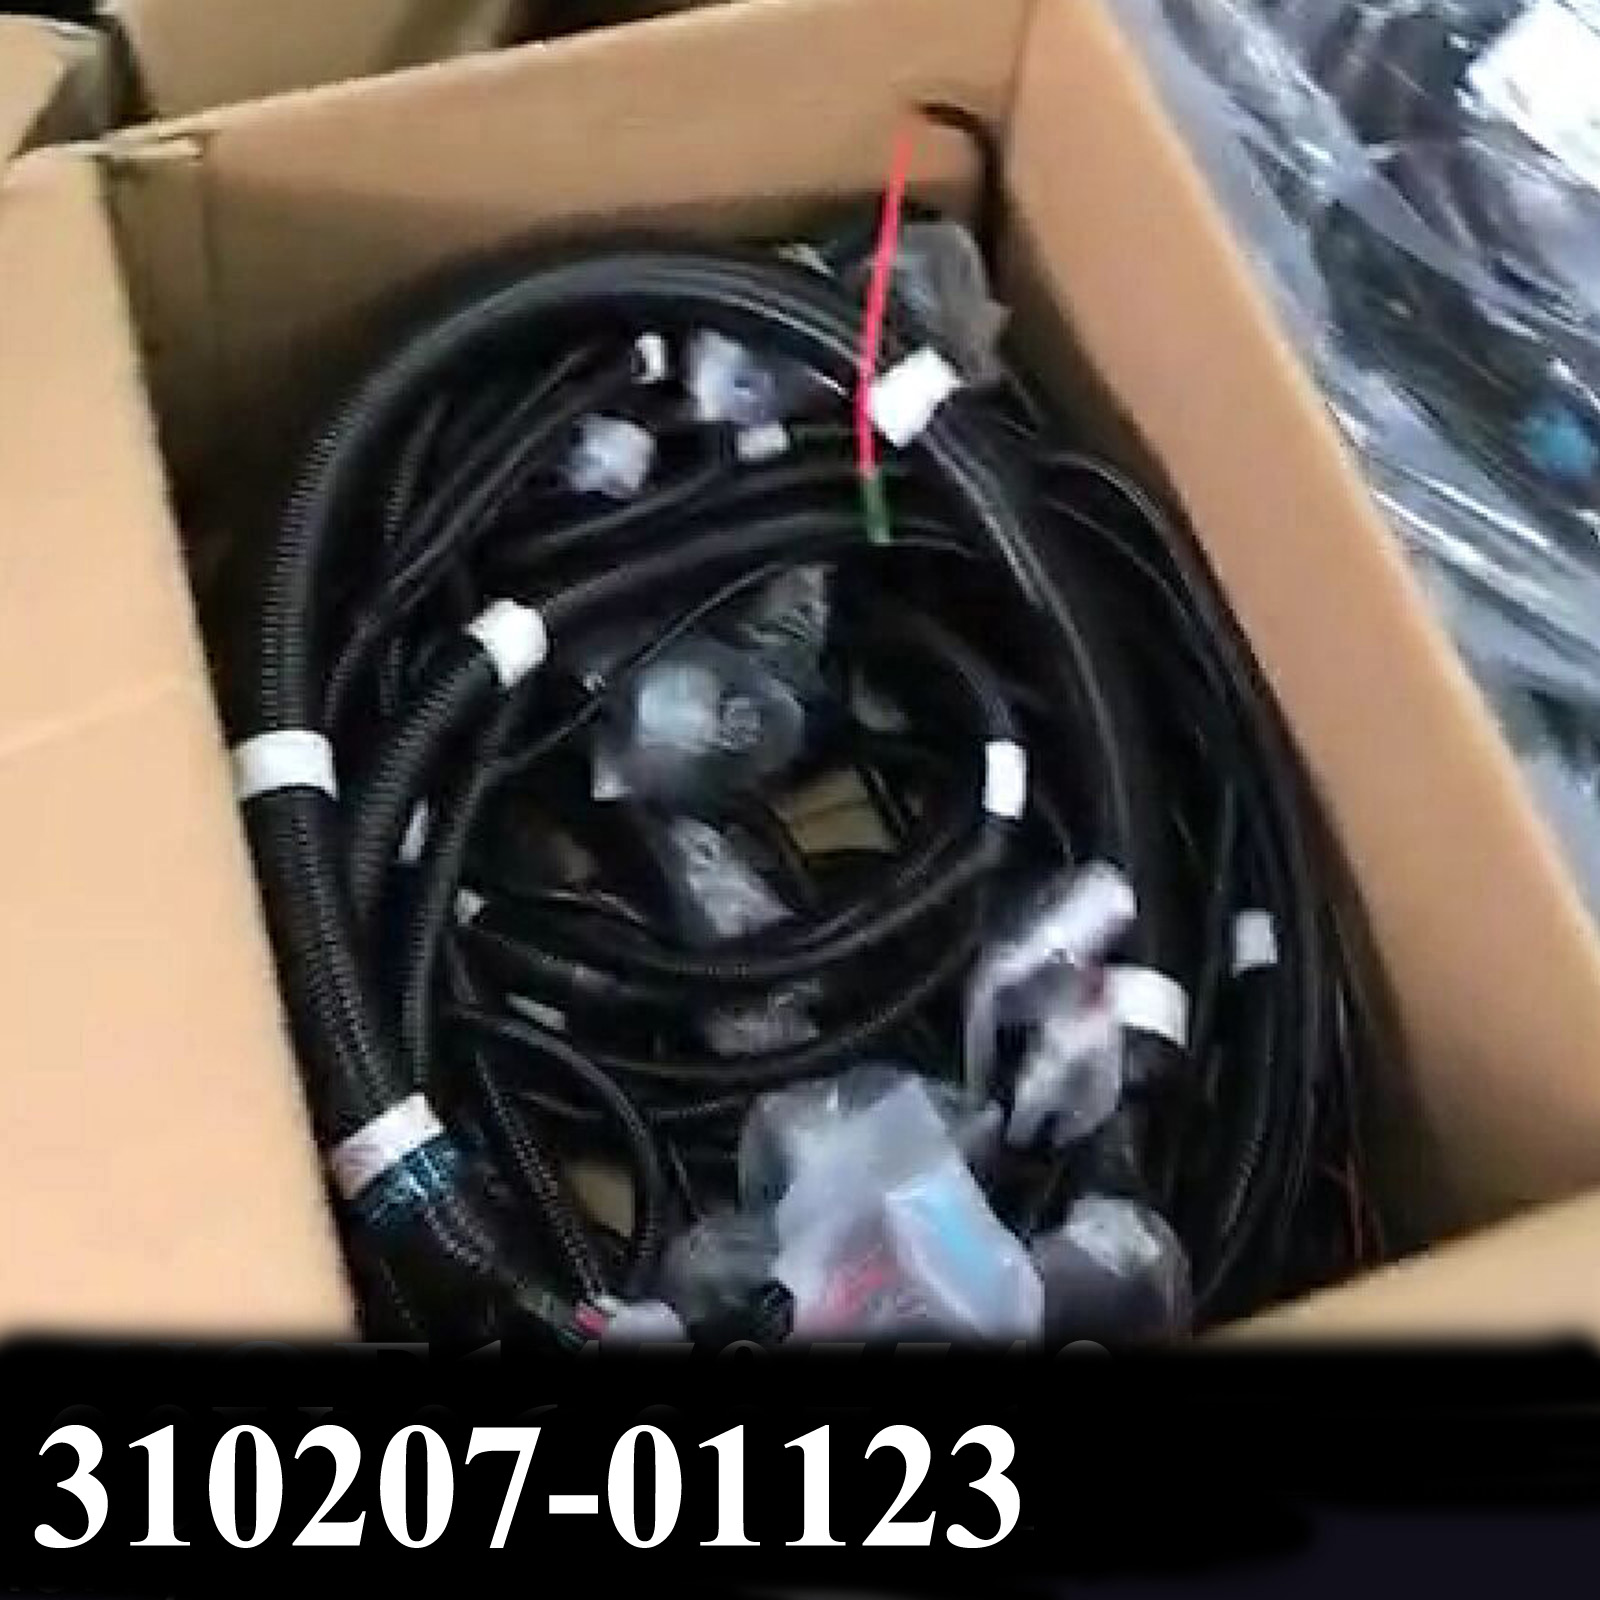 hight resolution of wire harness 4277927 for john deere 120 160lc 190 230lc 230lcrdetails about wire harness